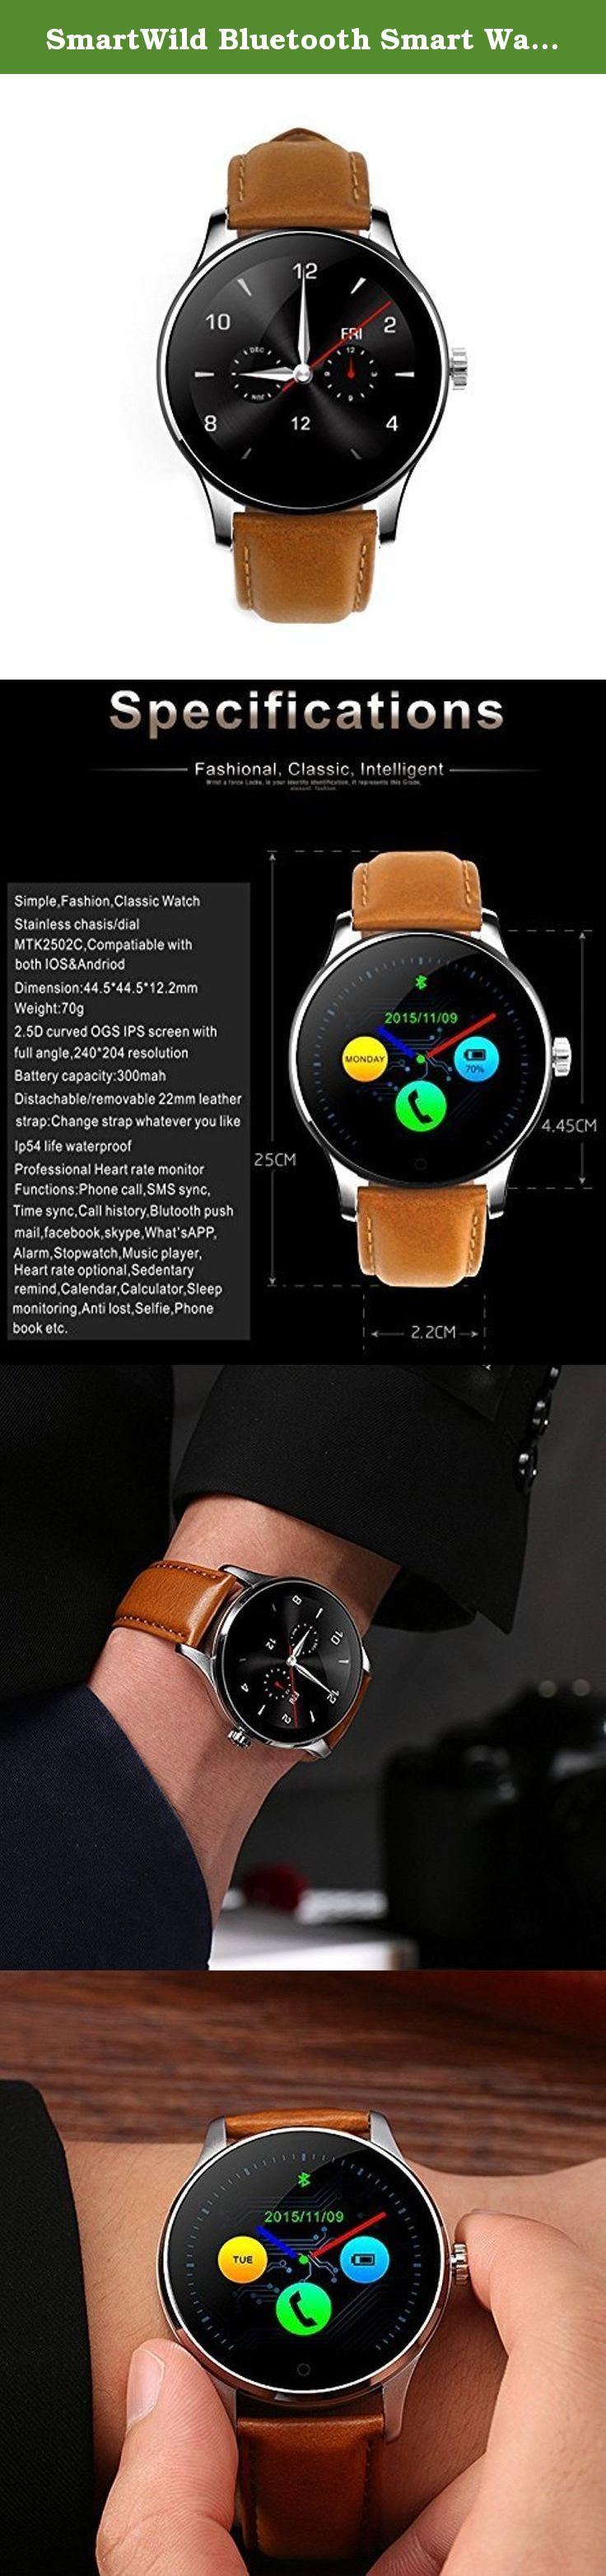 SmartWild Bluetooth Smart Watches K88H Classic Health Metal Smart Watch Heart Rate Monitor for Android ISO Phone Remote Camera Clock Pedomter Watch Phone. SmartWild K88H Smart Watch Wristwatch Health Metal with Remote Camera Clock Bluetooth Pedometer Heart Rate for Android and ios Phone Hot Point: Using MTK developed the first low-power chip Garments 2502C platform, compatible with Apple and Android Smartphone Professional level static + heart rate monitor, Control your health at any time...